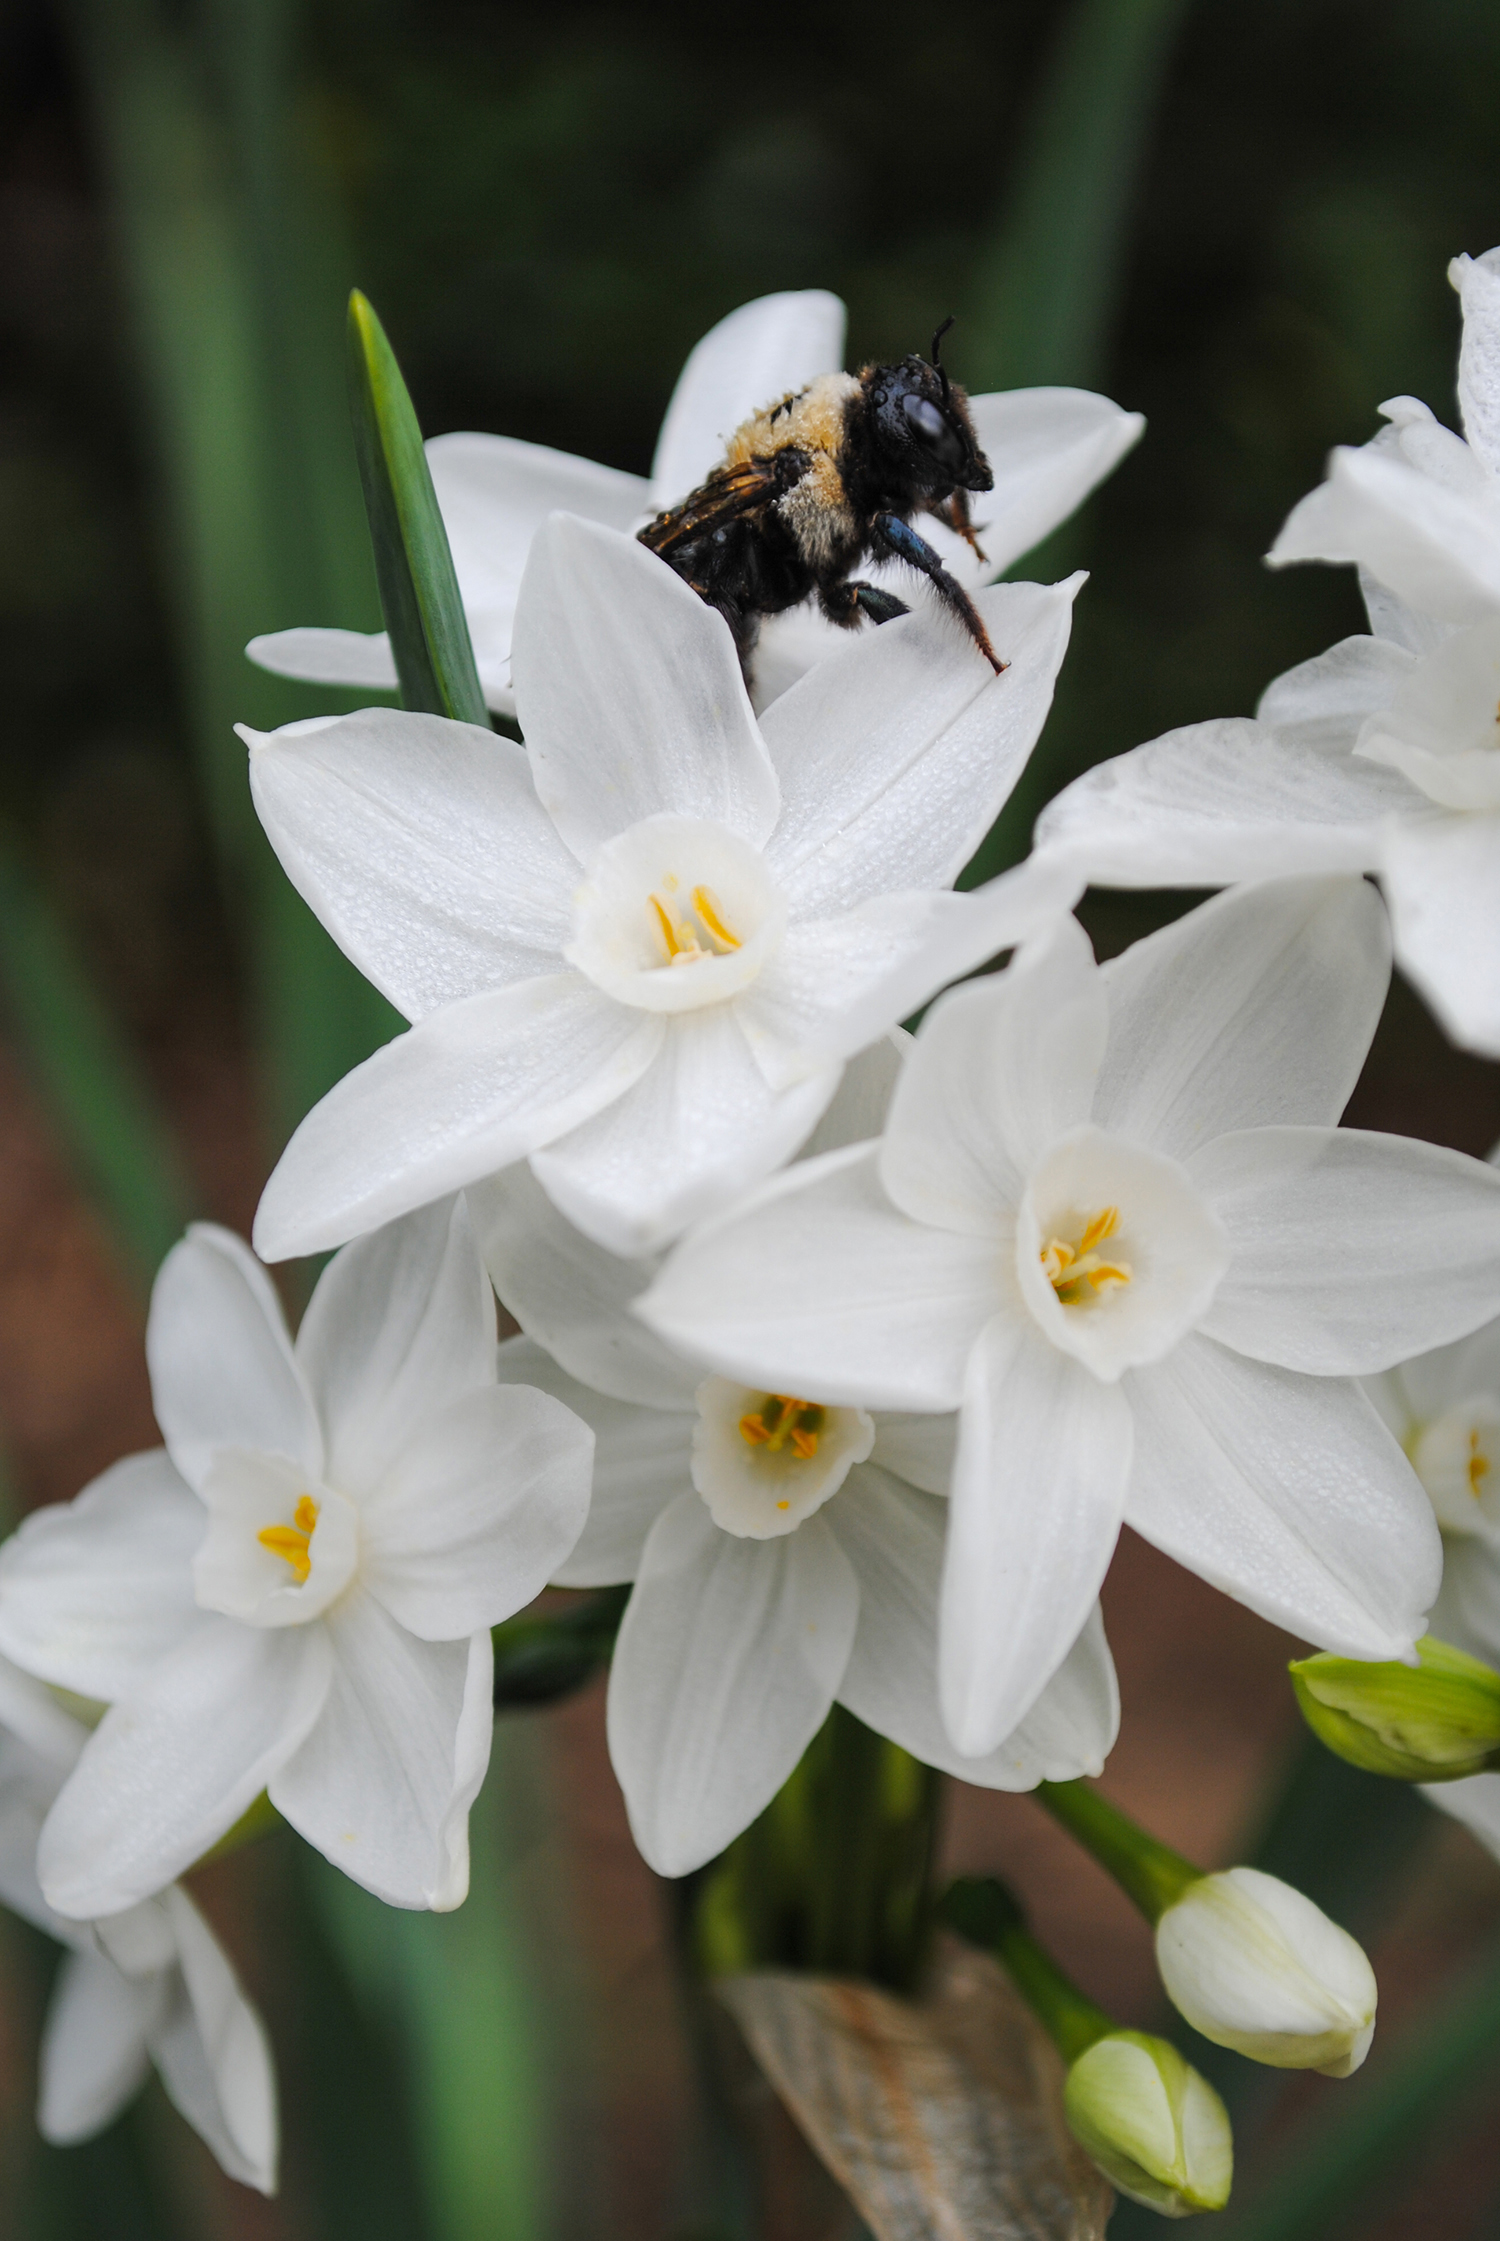 A bee rests on the parchment-like petals of Narcissus papyraceus.